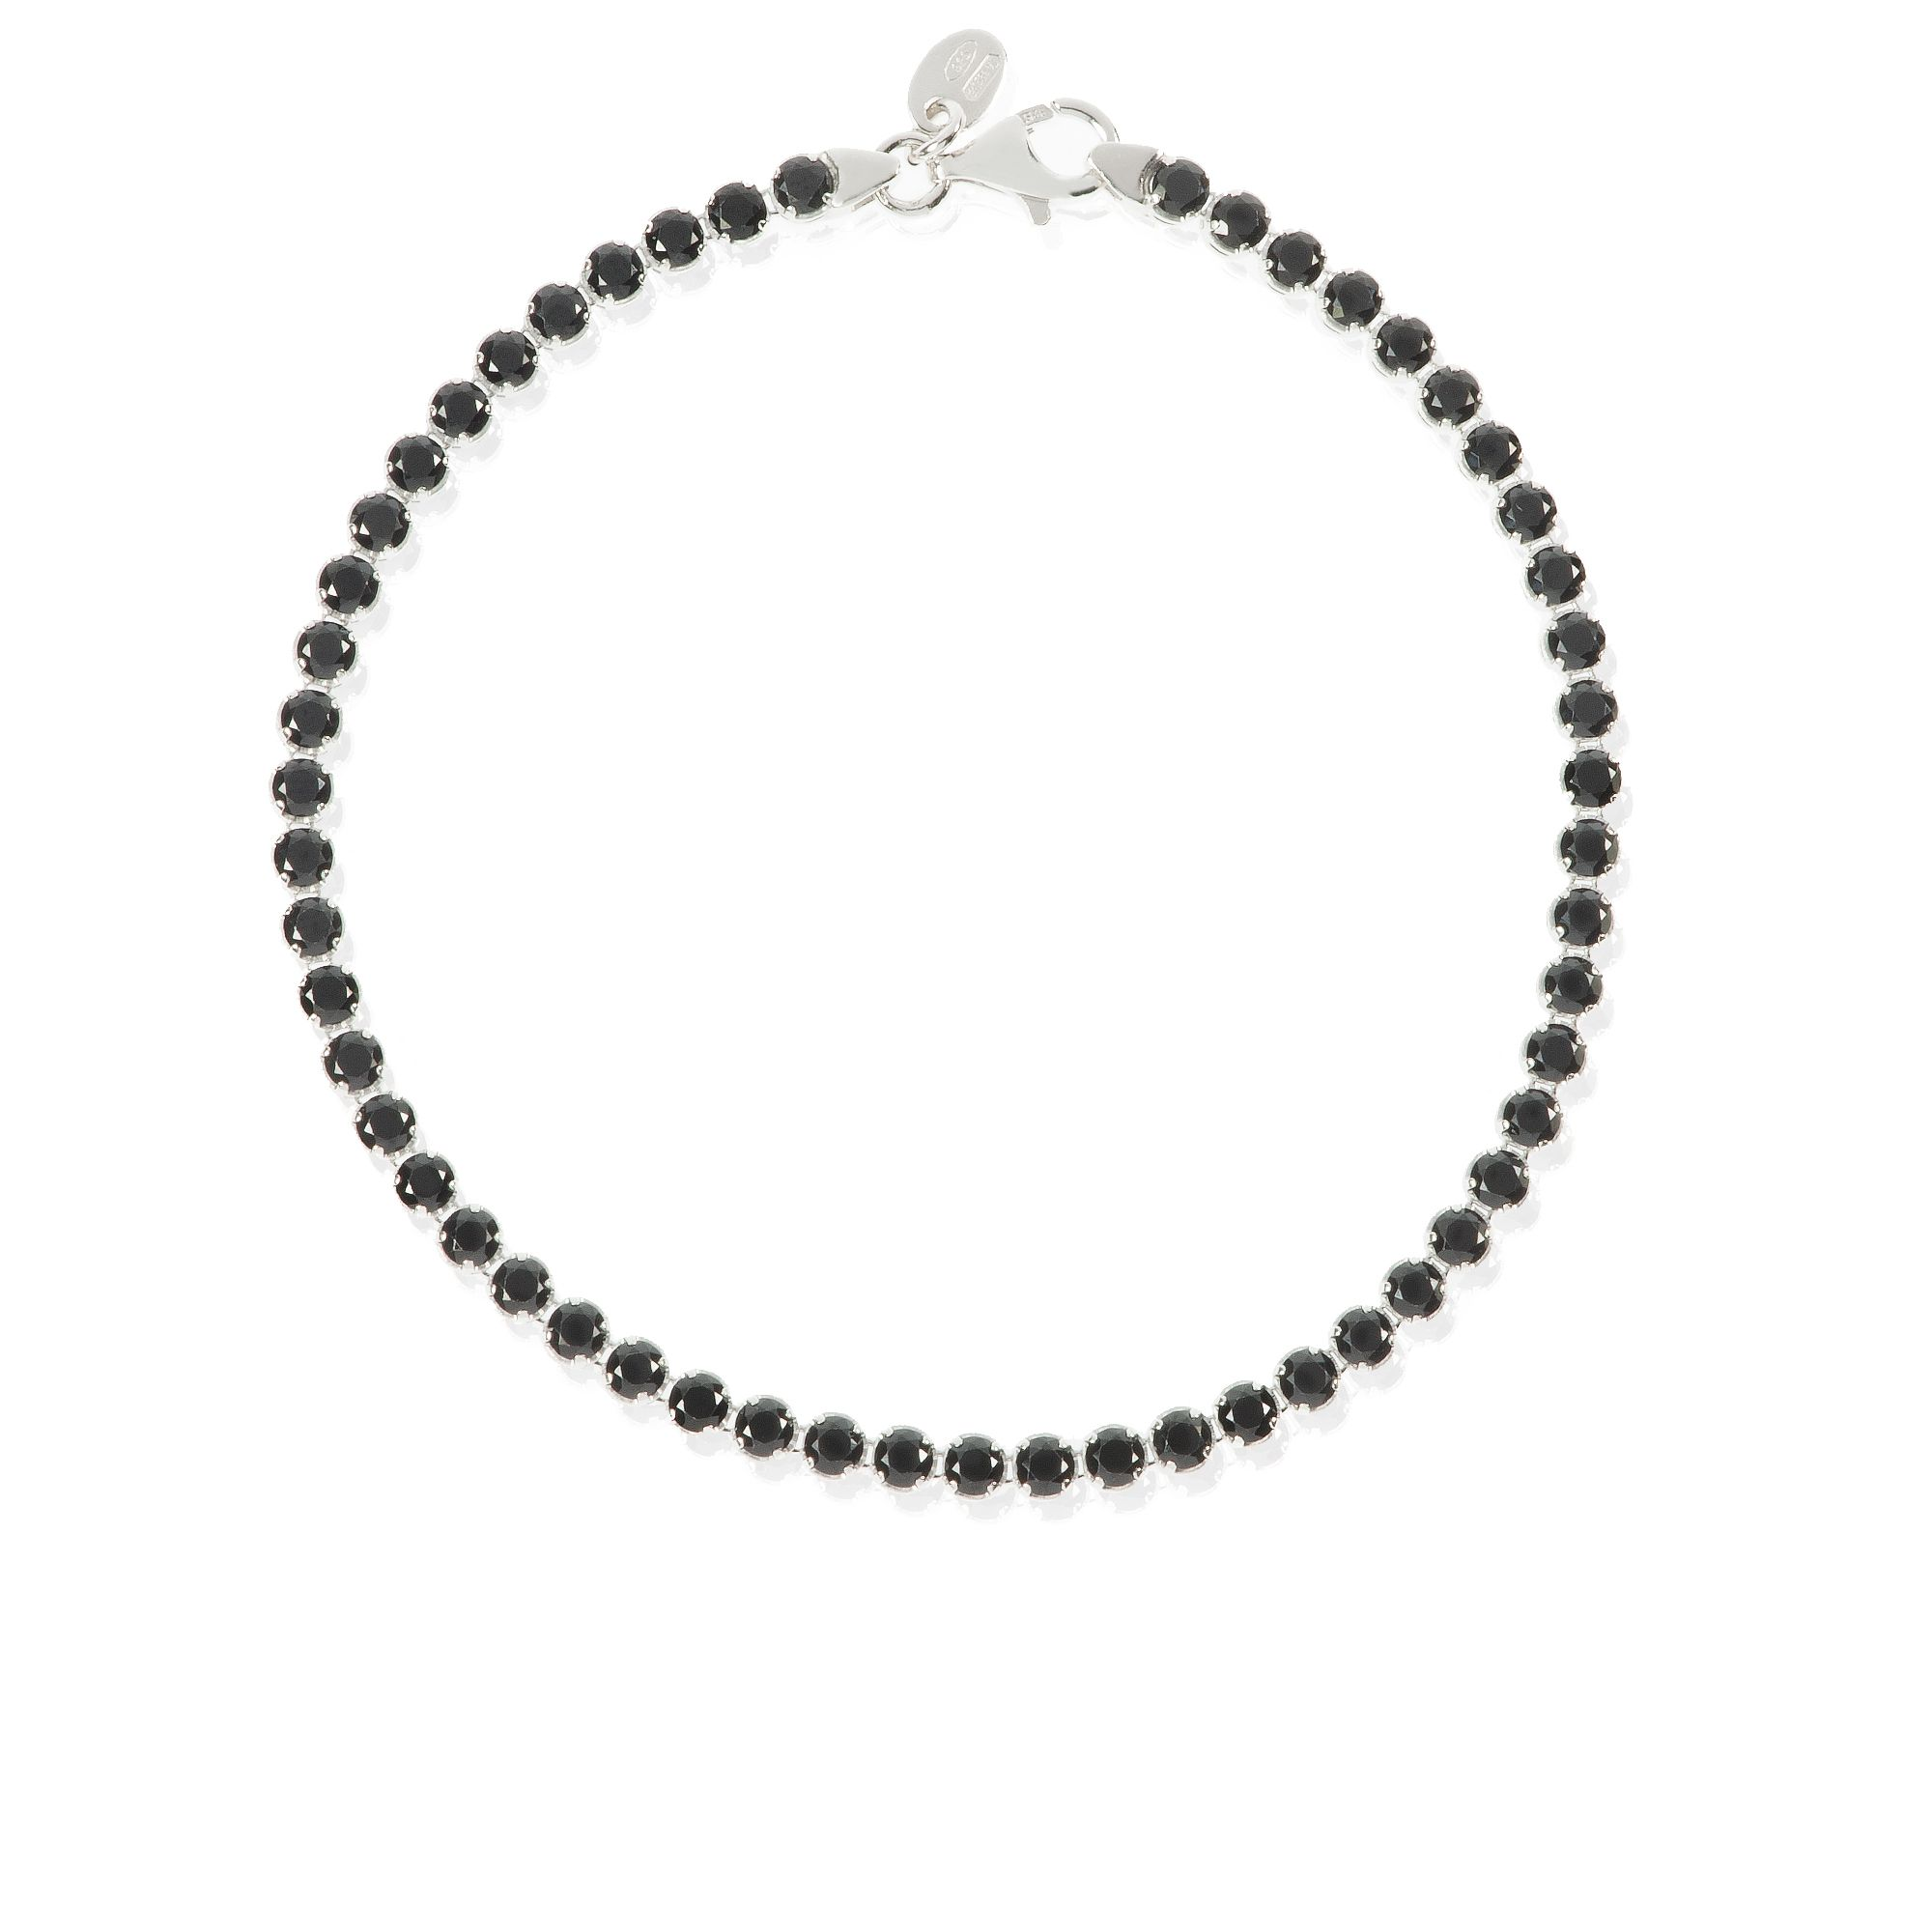 Qvc Stoneline Imagination Midnight Bracciale Tennis In Argento 925 Qvc Italia